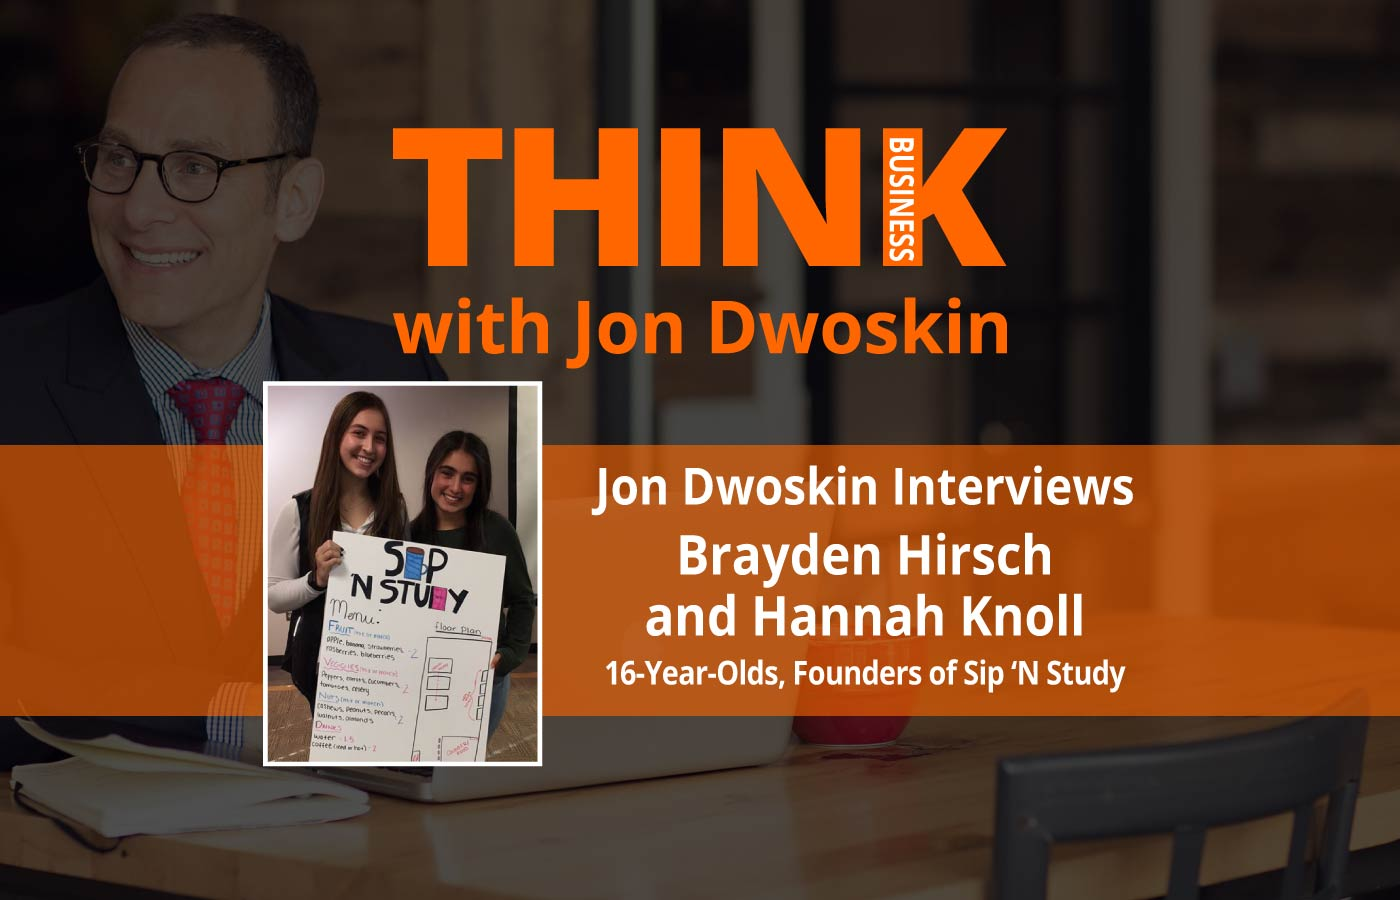 THINK Business Podcast: Jon Dwoskin Interviews Brayden Hirsch and Hannah Knoll, 16-Year-Olds, Founders of Sip 'N Study